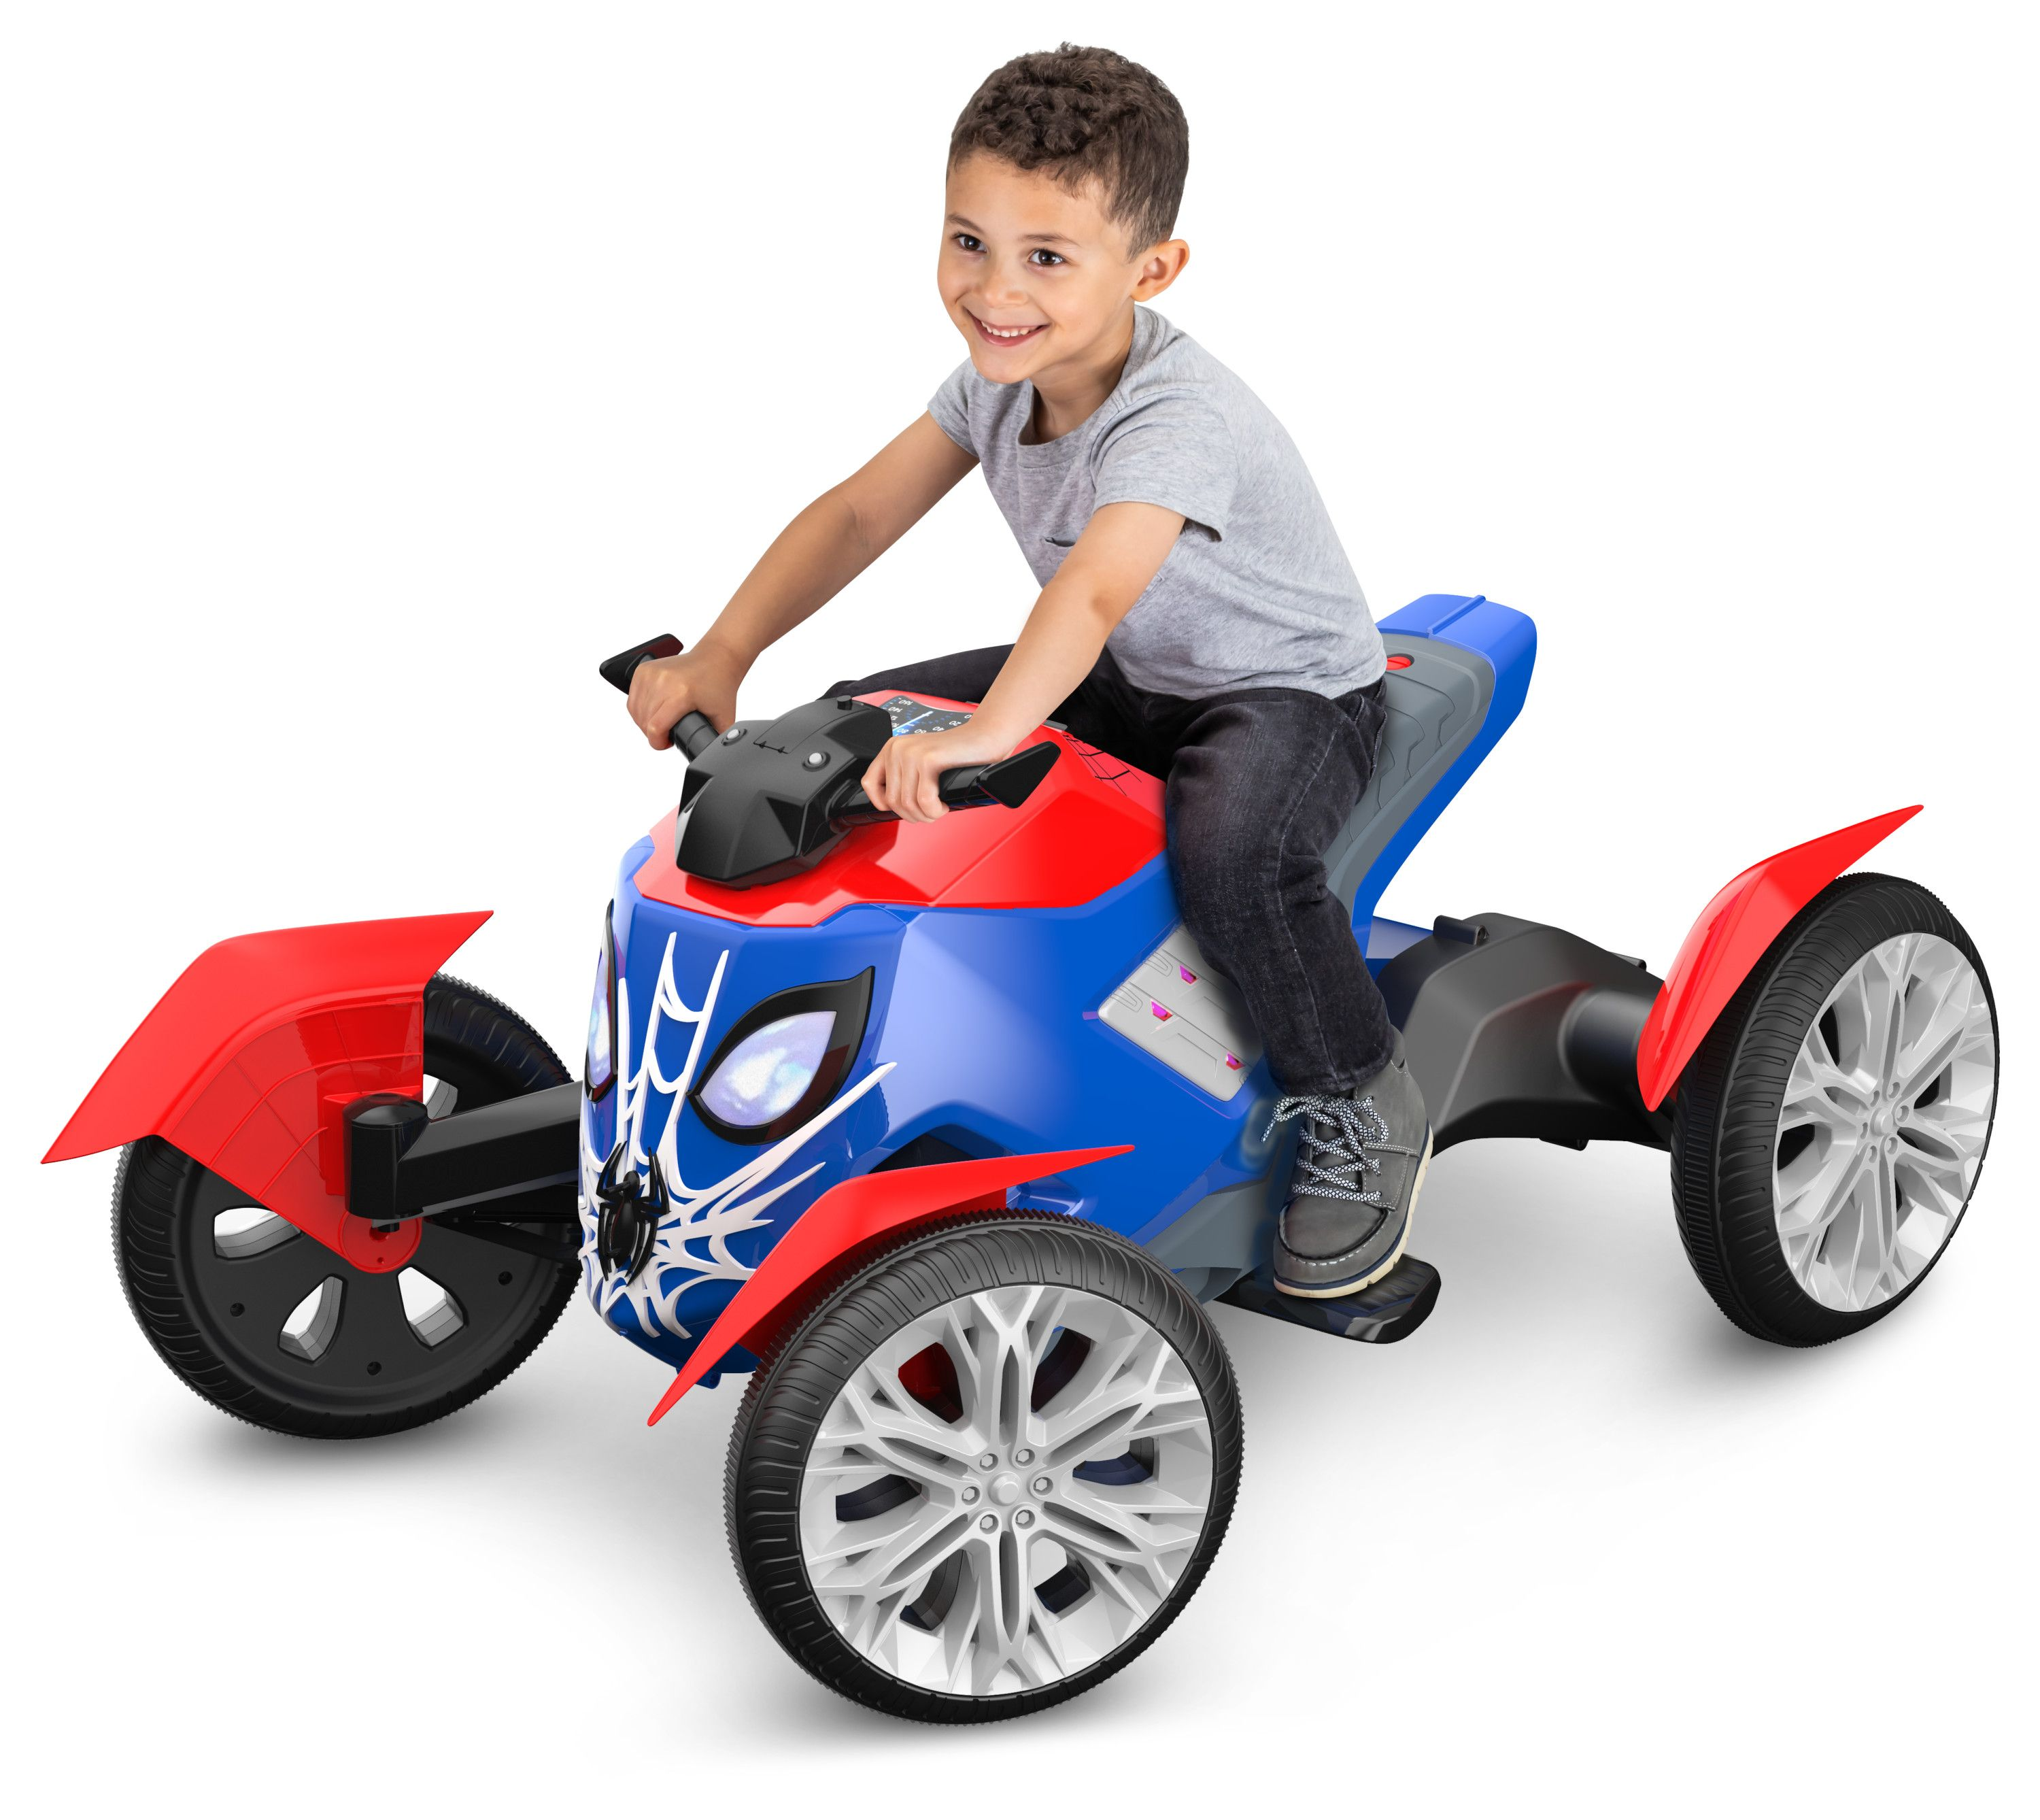 Shop by Movie Kids ride on toys, Ride on toys, Kids ride on